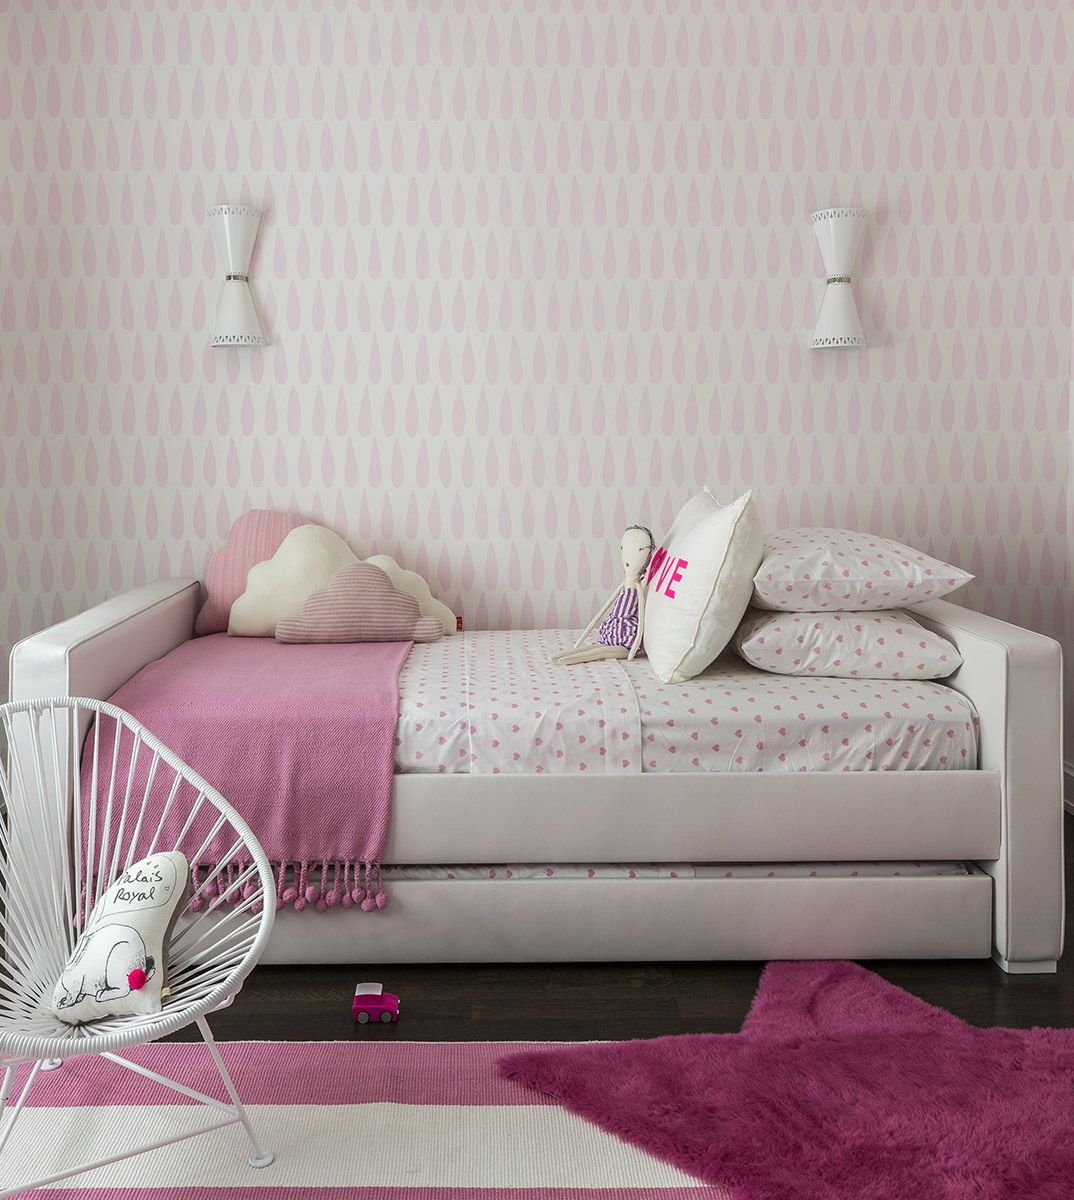 Best Upholstered Dorma Twin Bed With Trundle In A Pink Girls 400 x 300